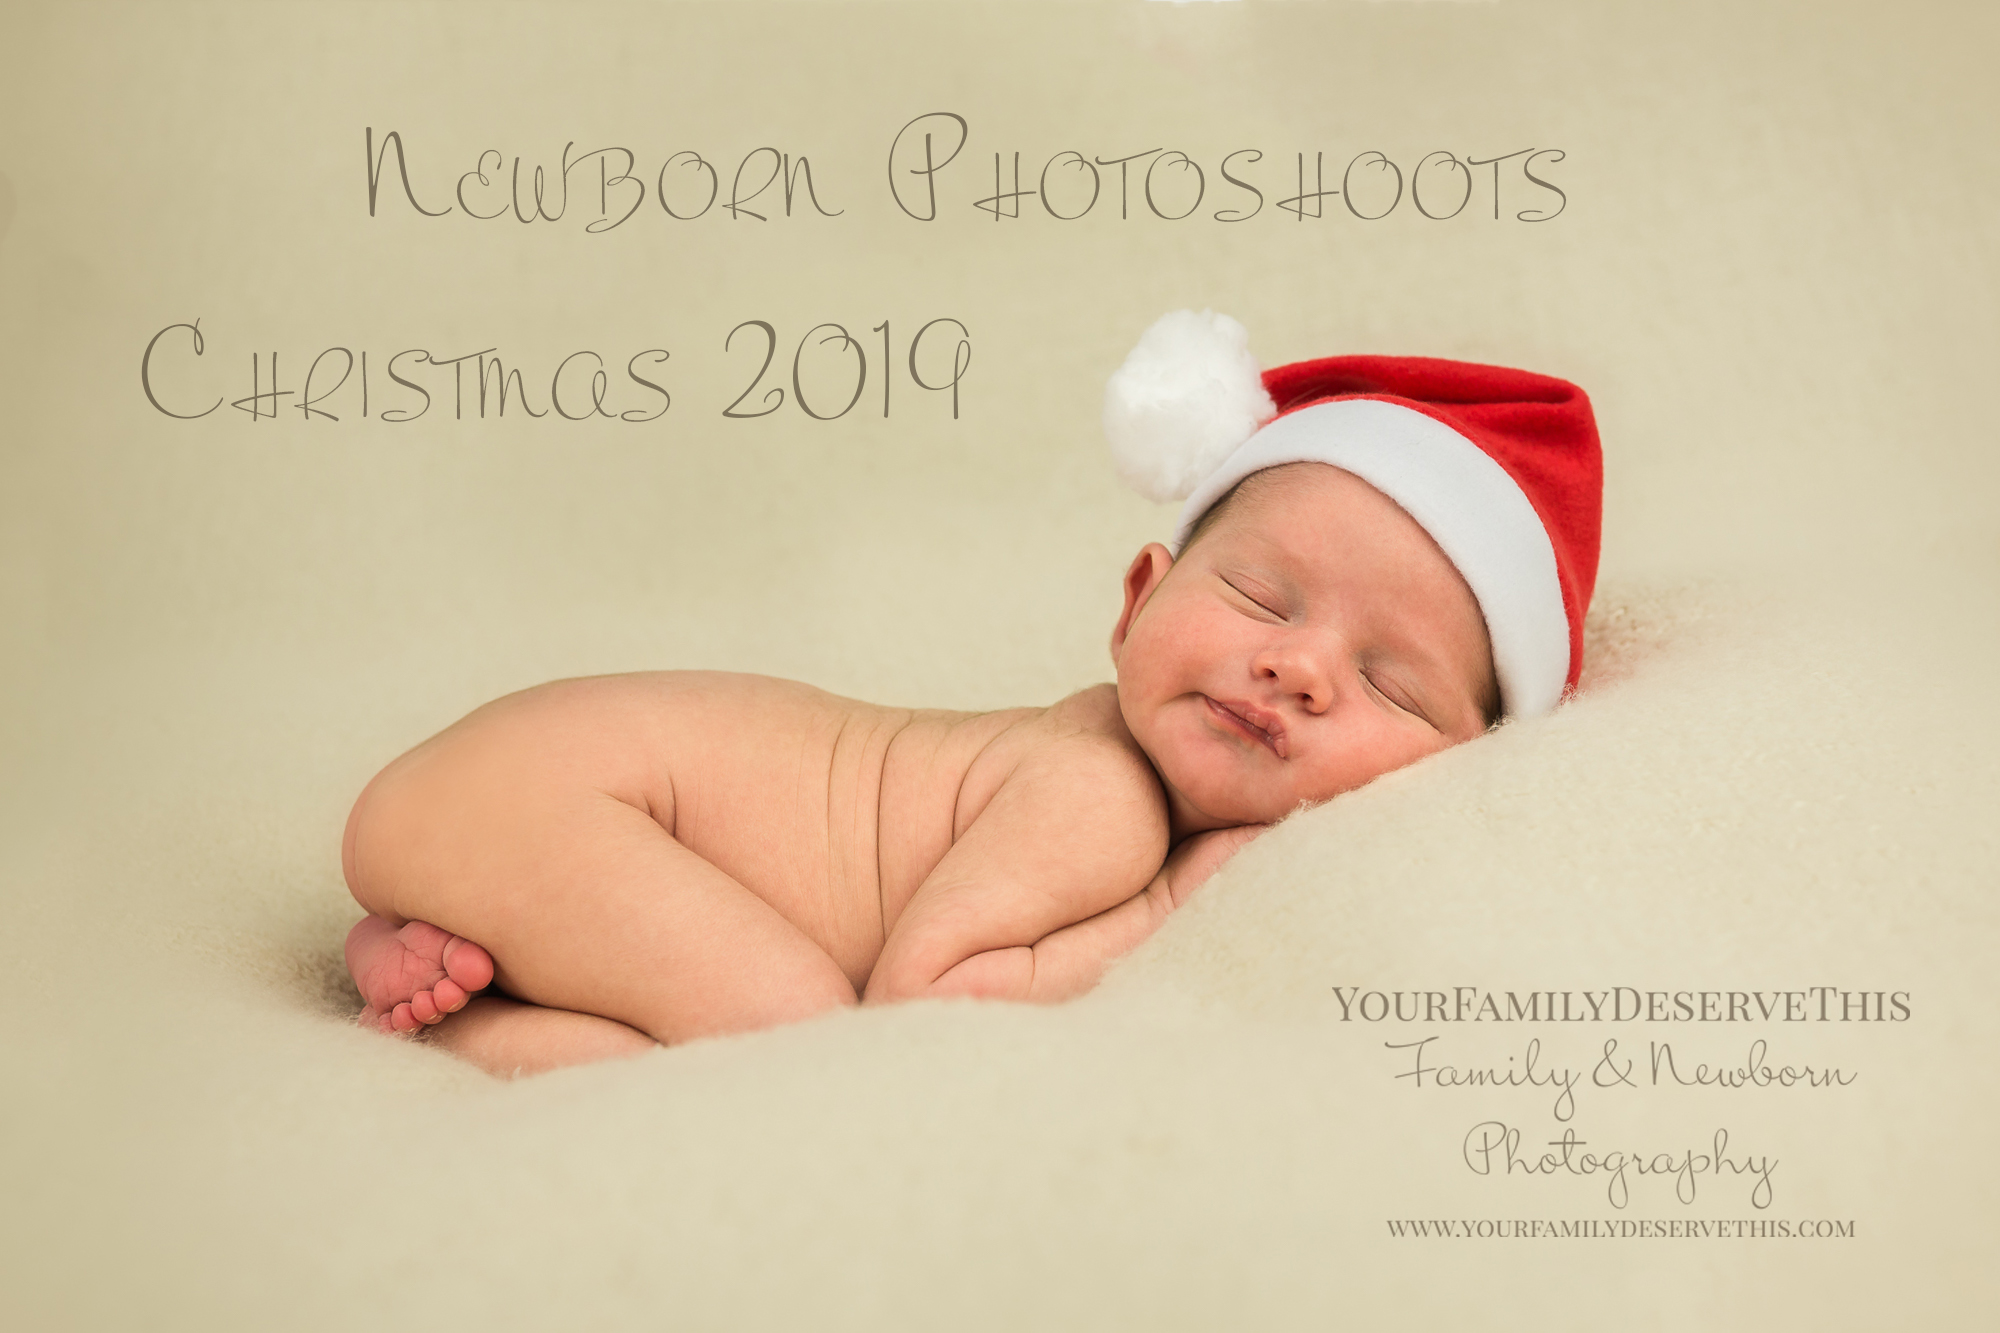 Important information about booking in your Newborn Photoshoot in the 2019 Festive Season.